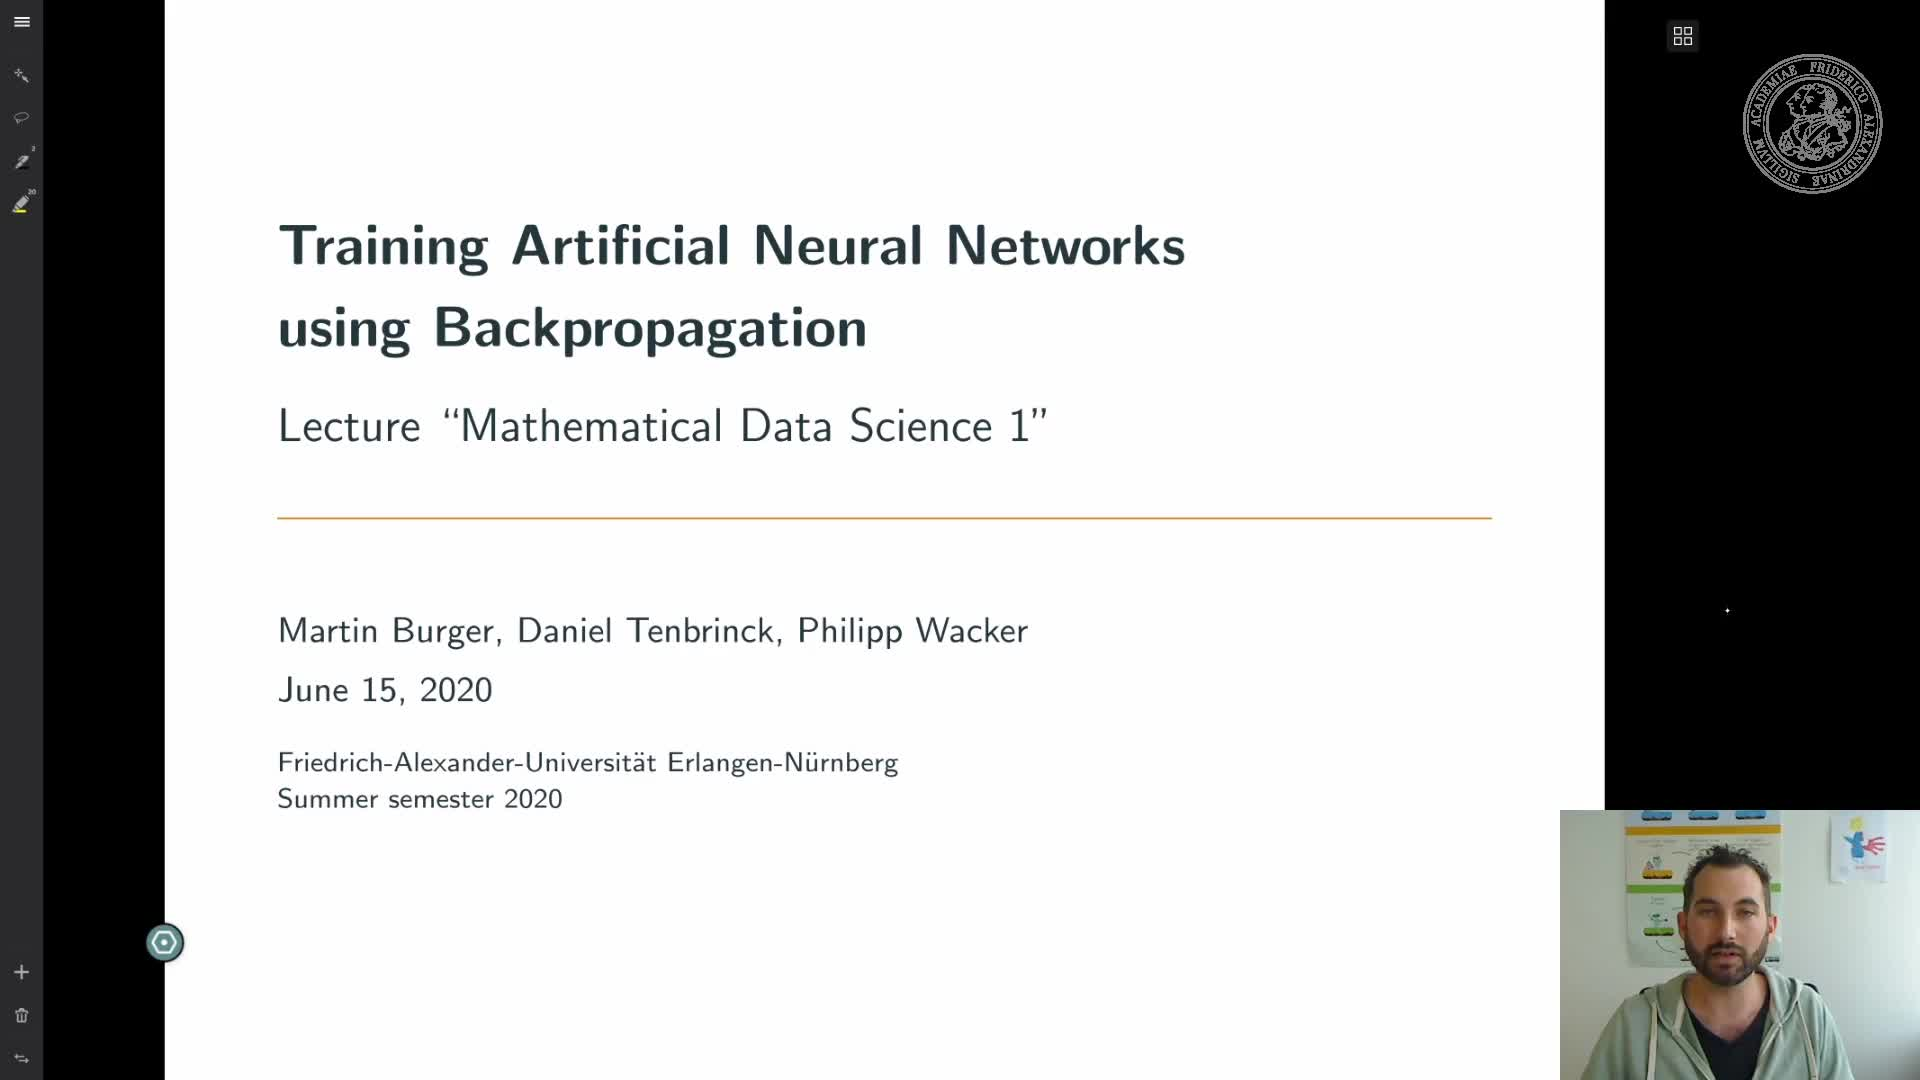 Training Artificial Neural Networks using Backpropagation preview image